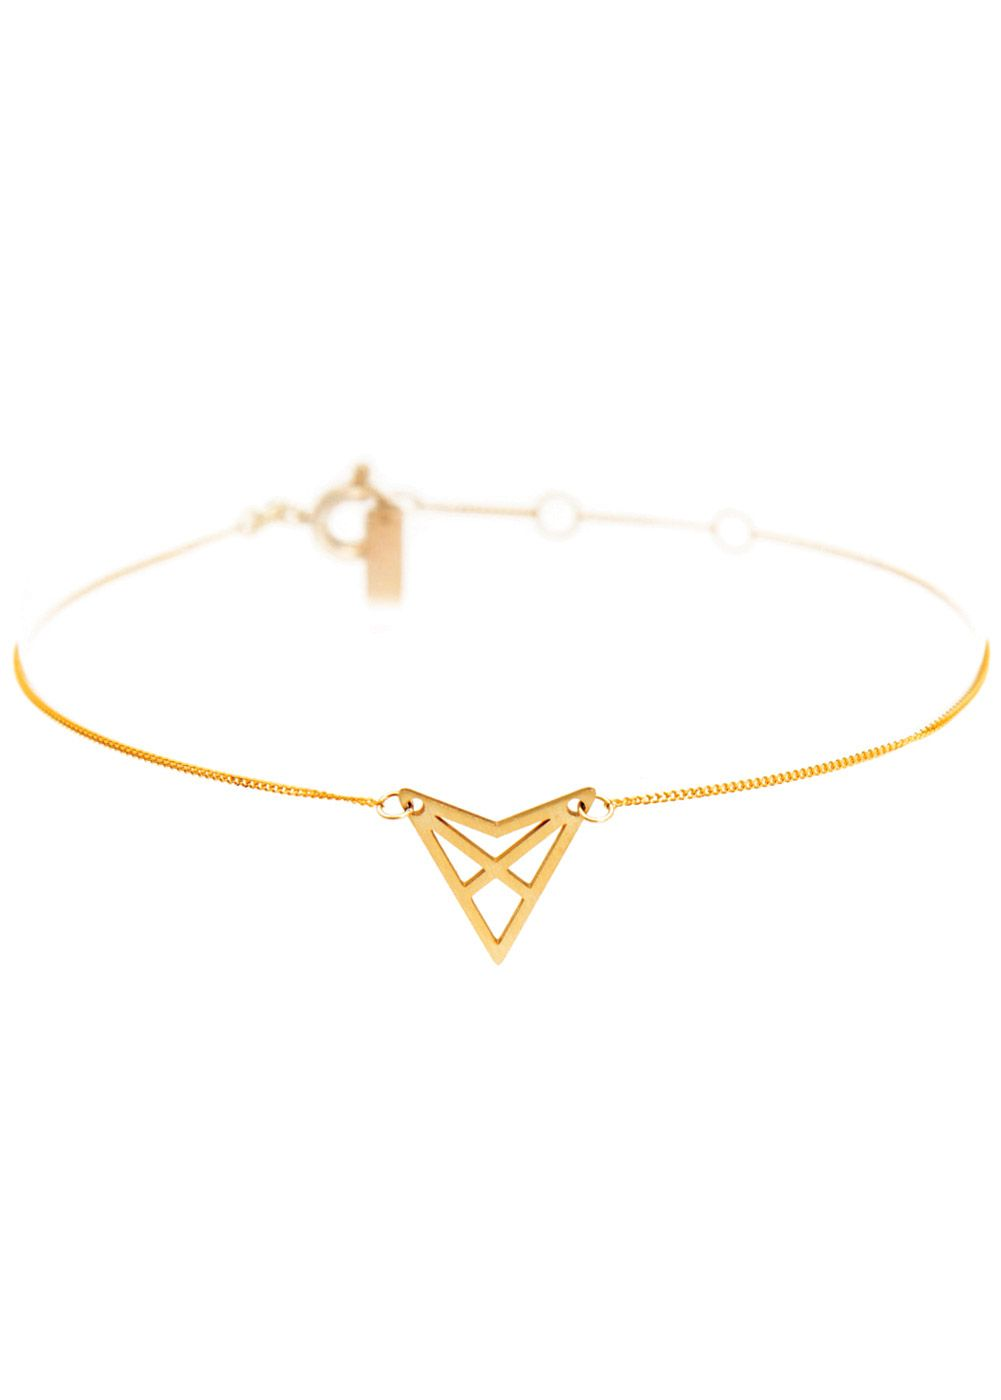 Chain bracelet - design gold plated delicate and minimalistic